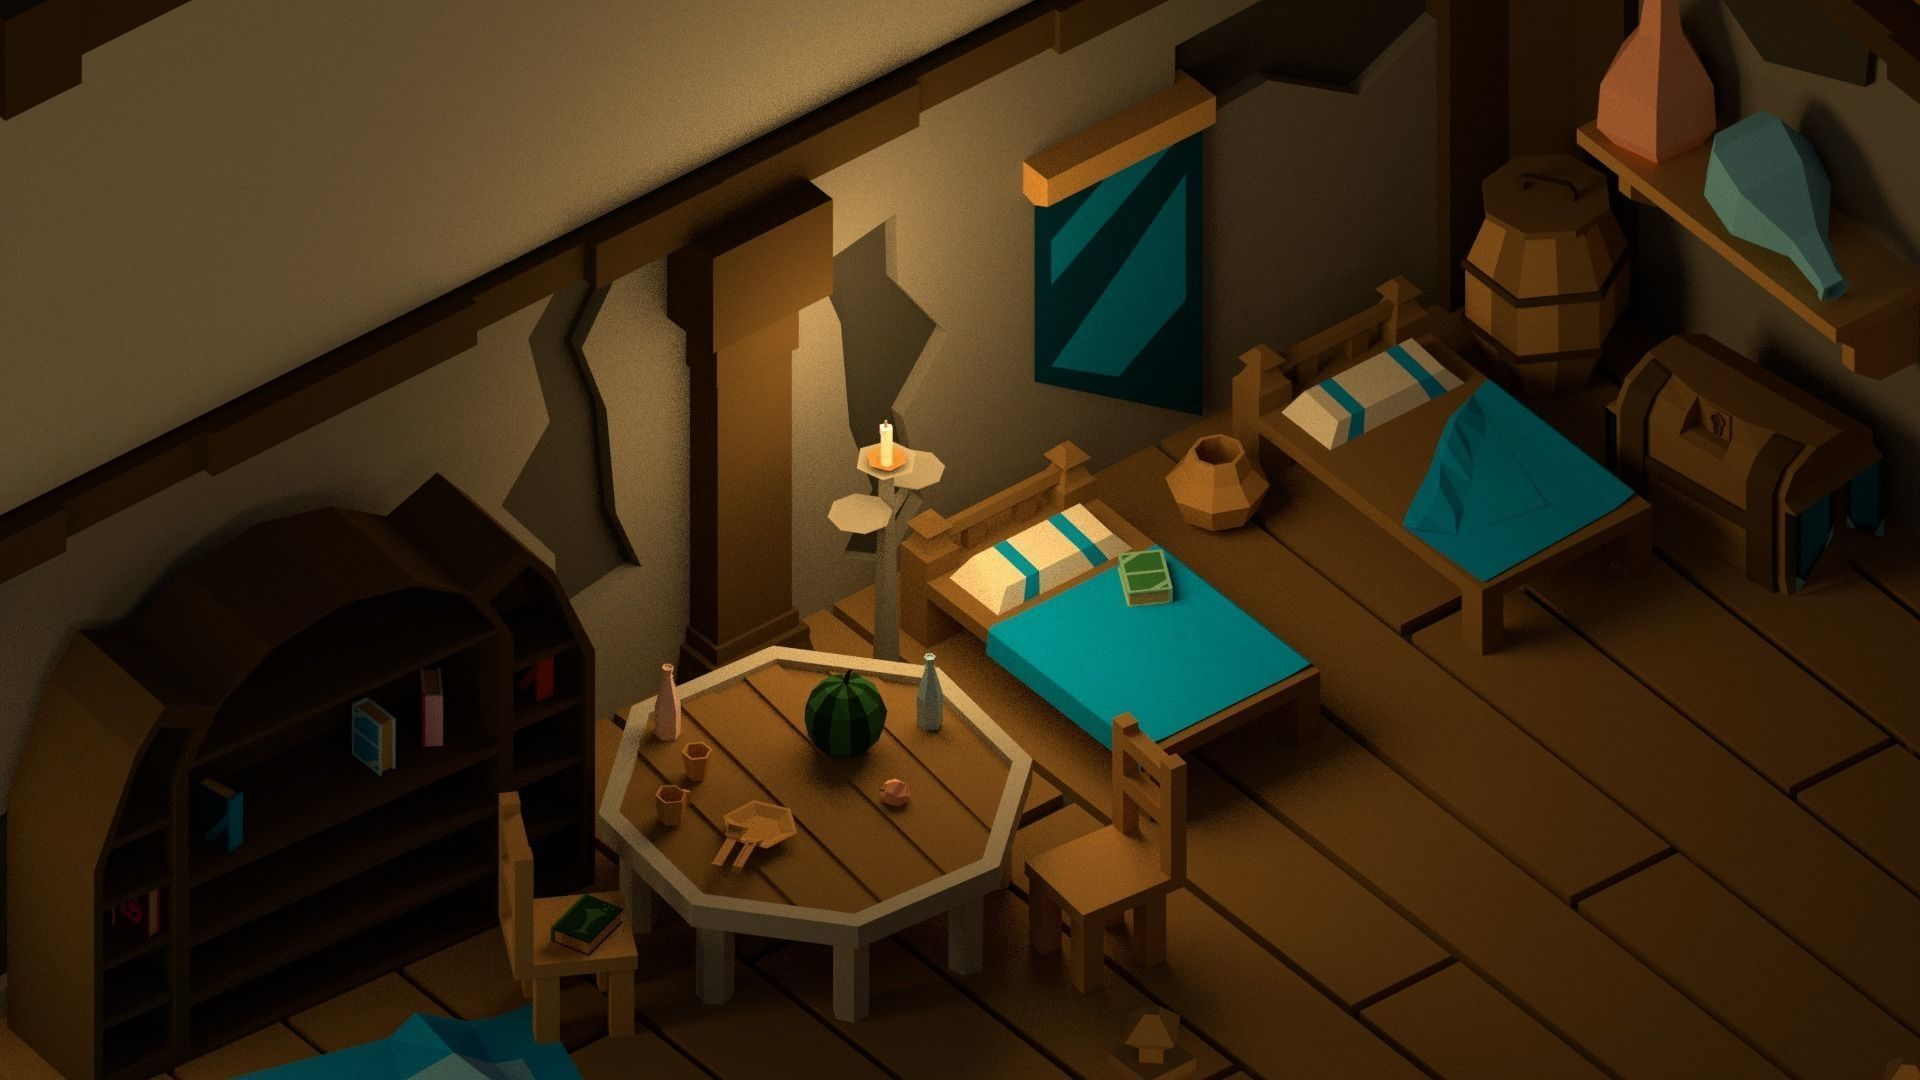 Medieval Interior Pack Low Poly Cartoon Pack 3d Model With